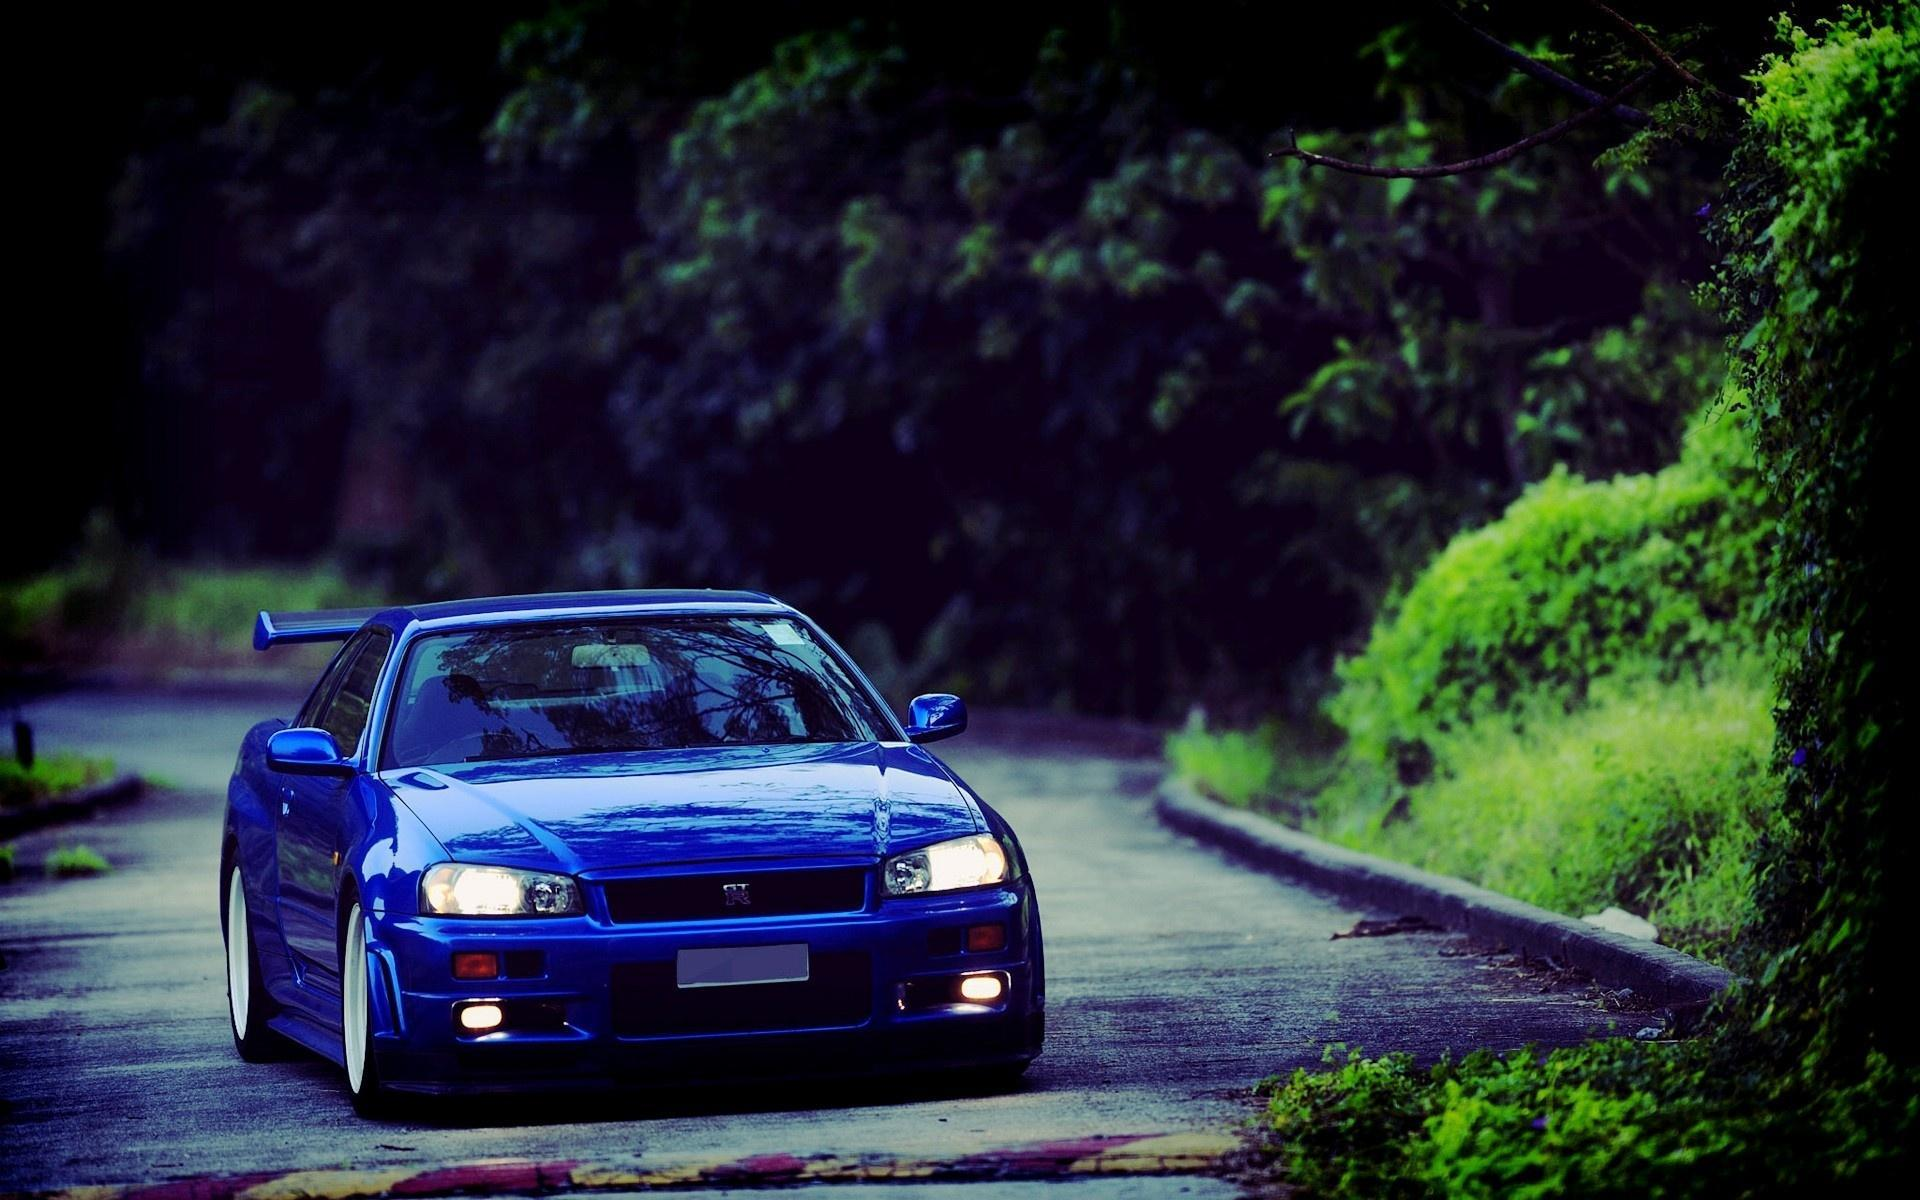 Nissan Skyline Gtr R34 Wallpapers Hd Wallpaper Cave